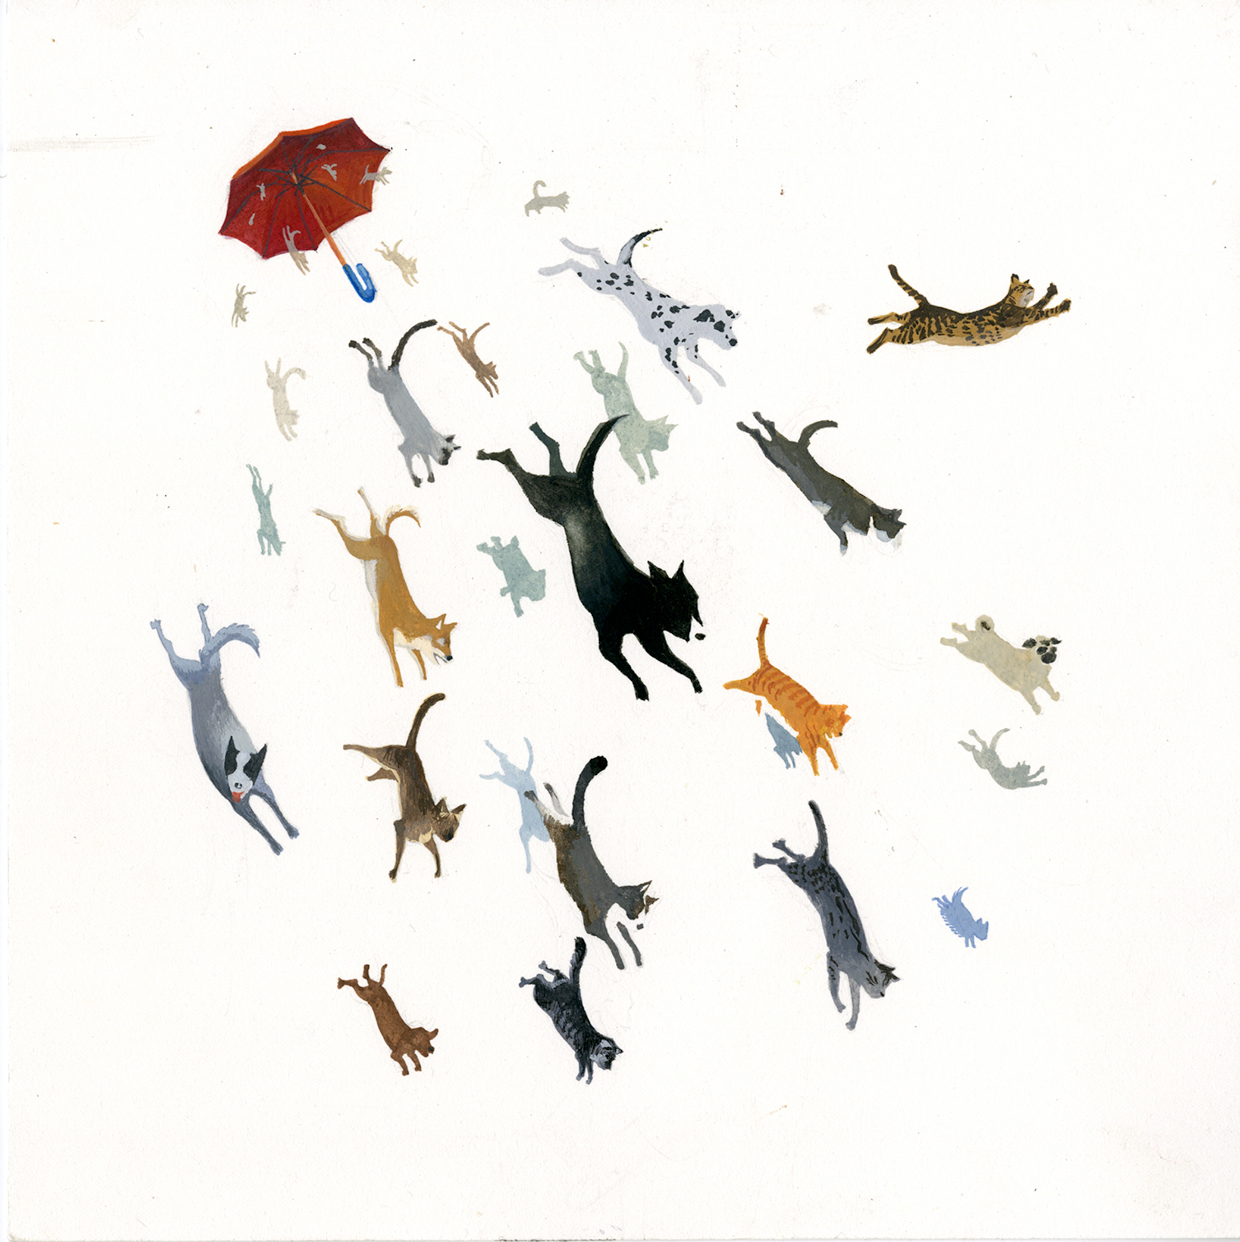 Raining Cats And Dogs Drawing Raining Cats And Dogs Was a